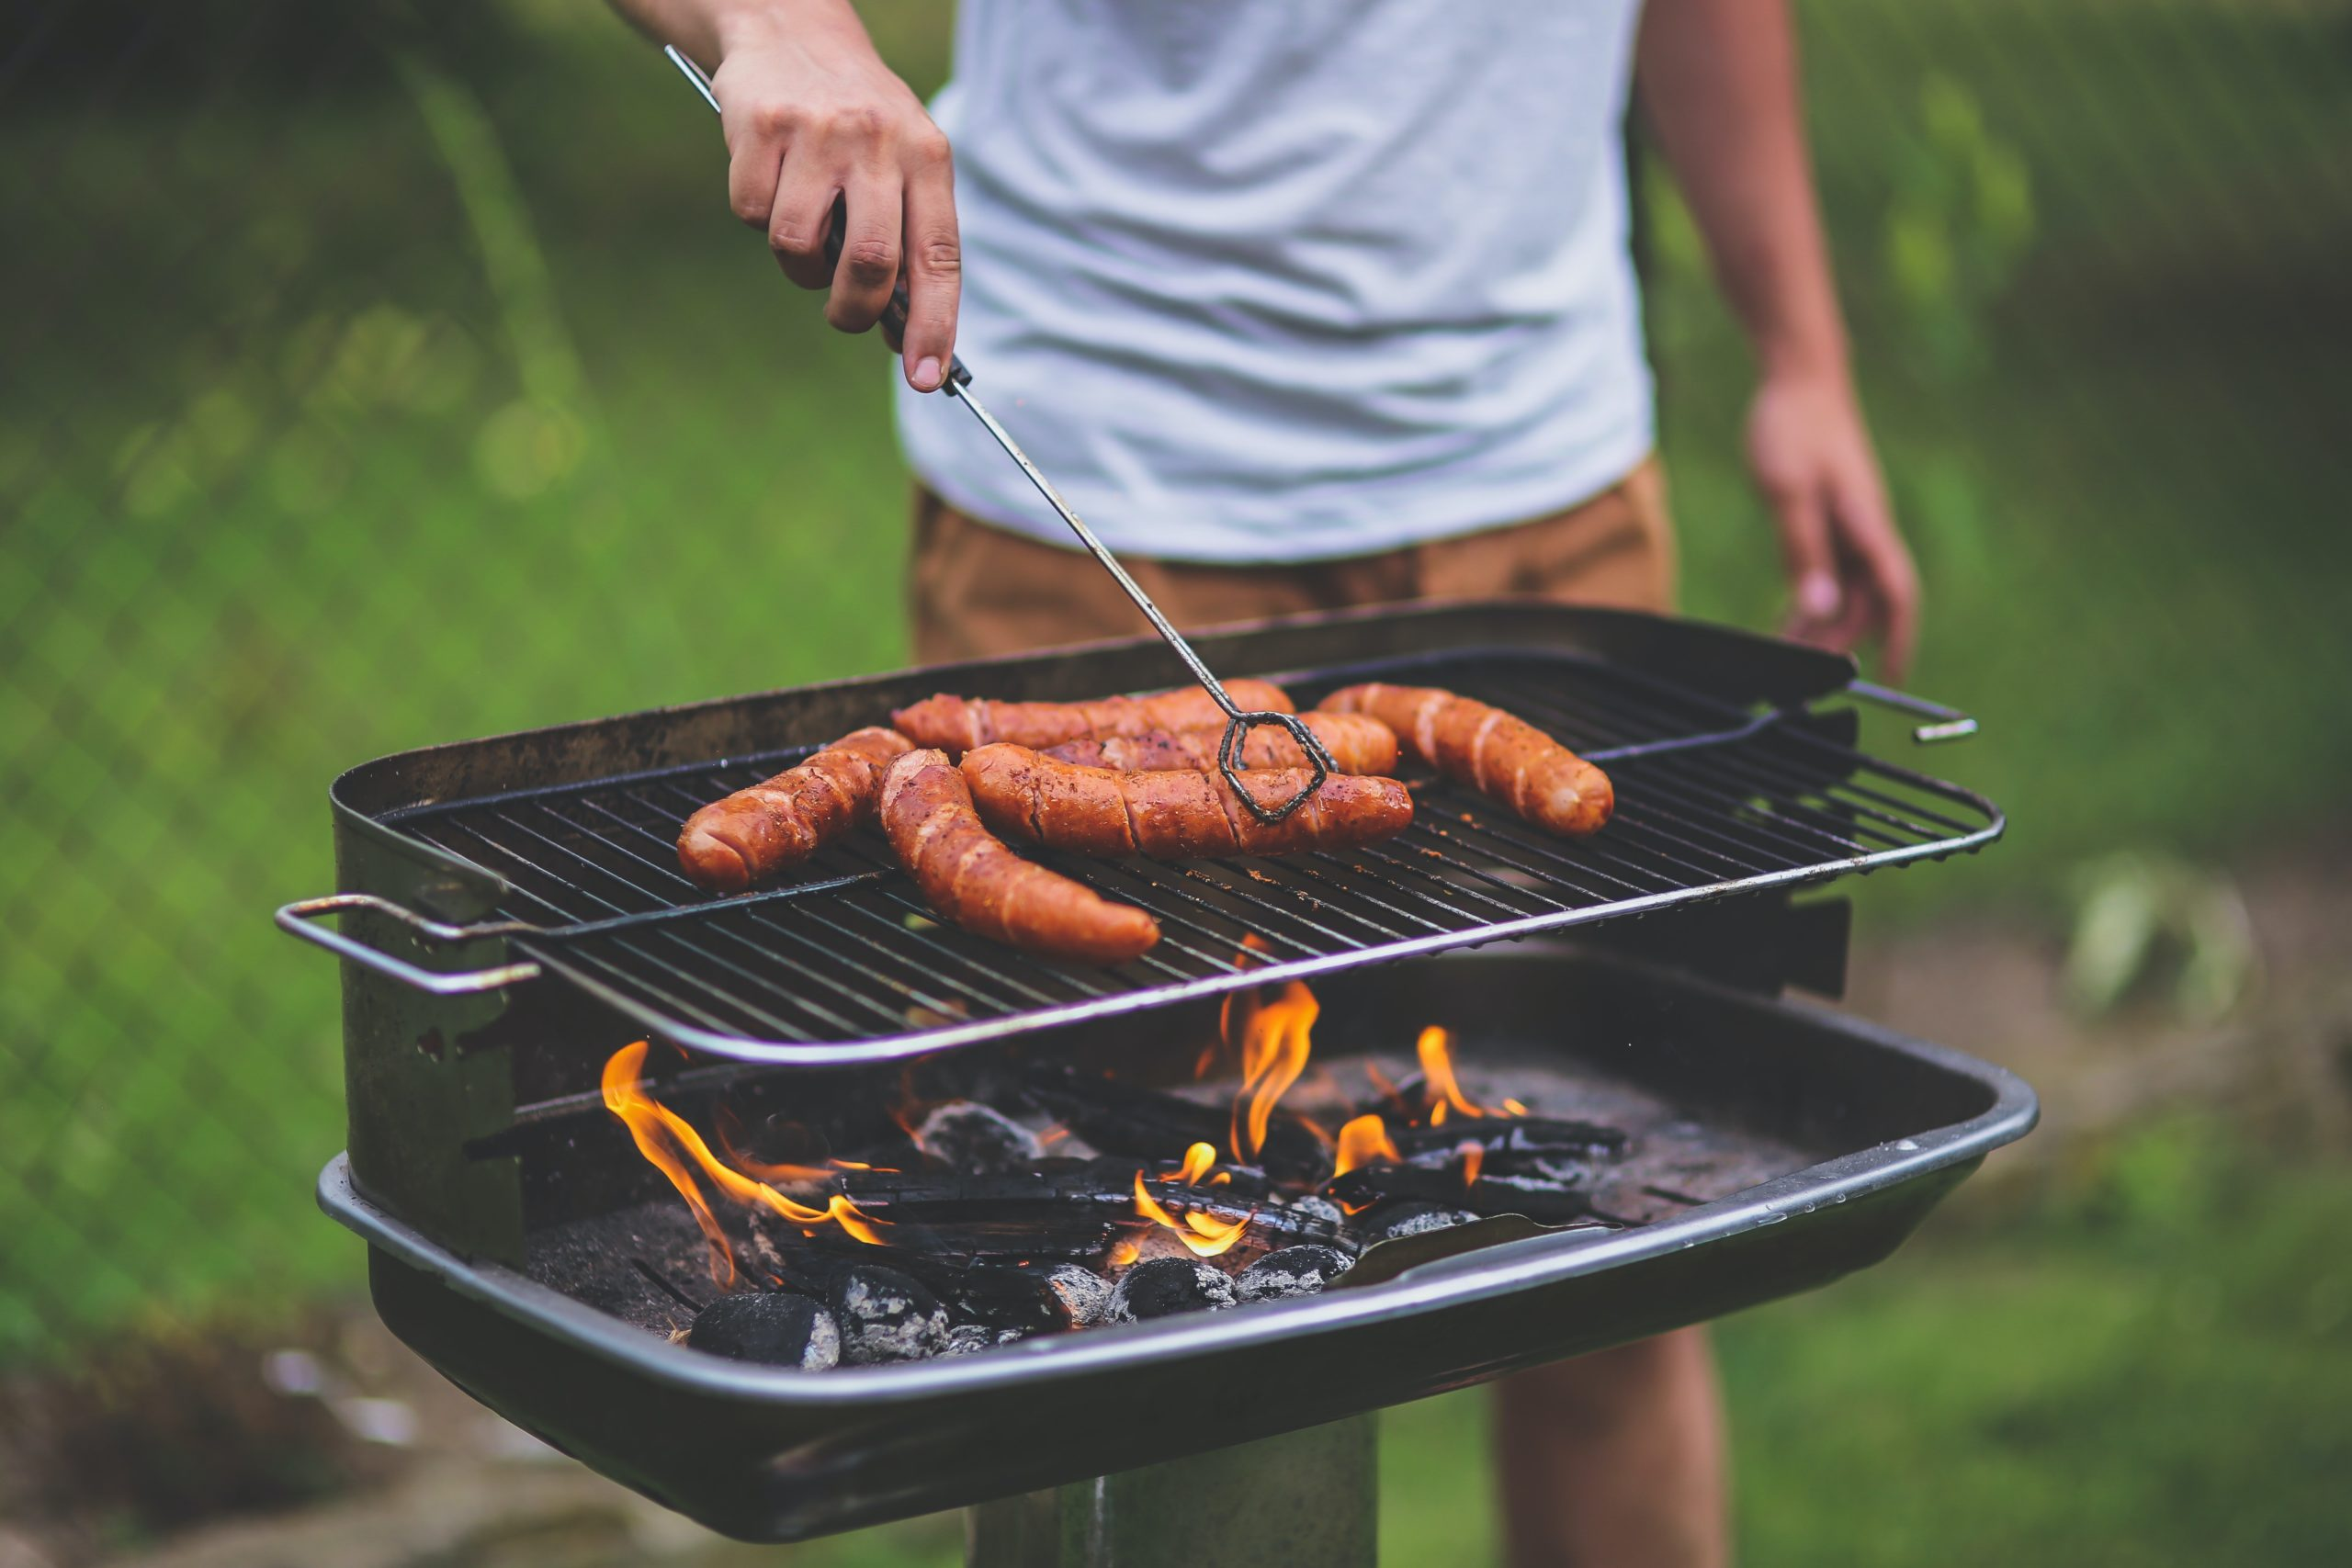 Man grilling | Photo by Kaboompics on Pexels